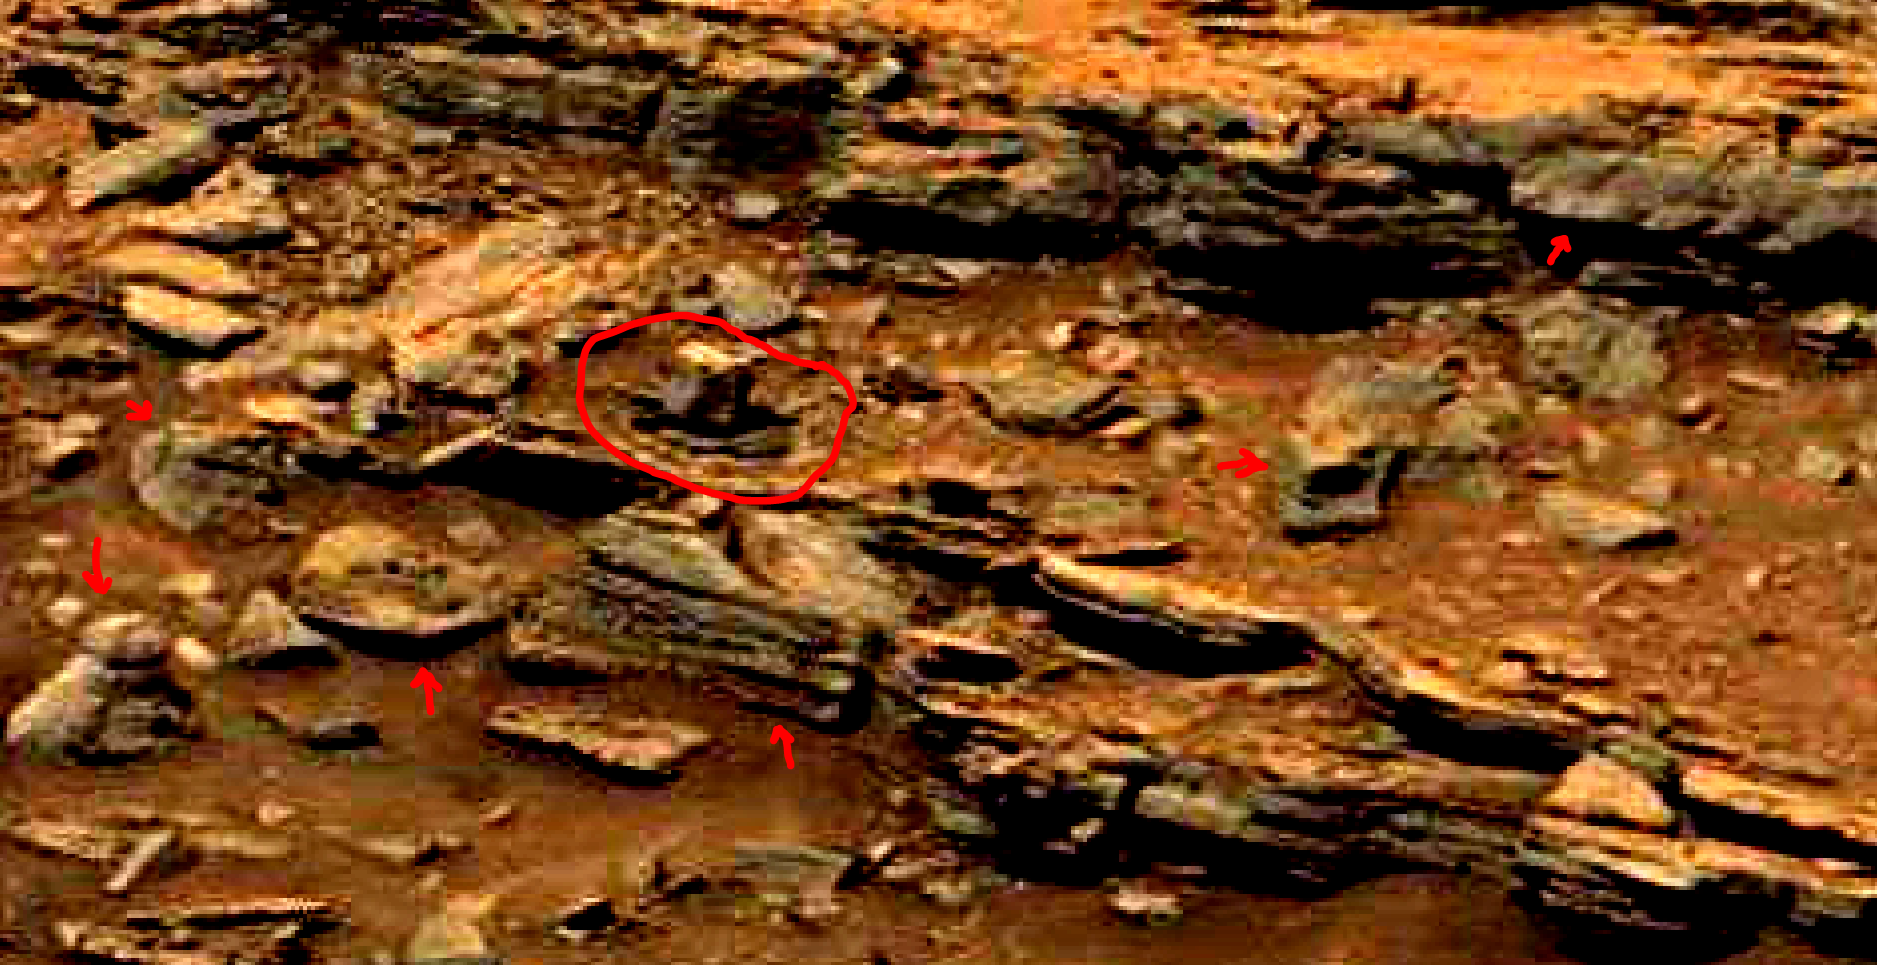 mars-sol-1463-anomaly-artifacts-28-was-life-on-mars